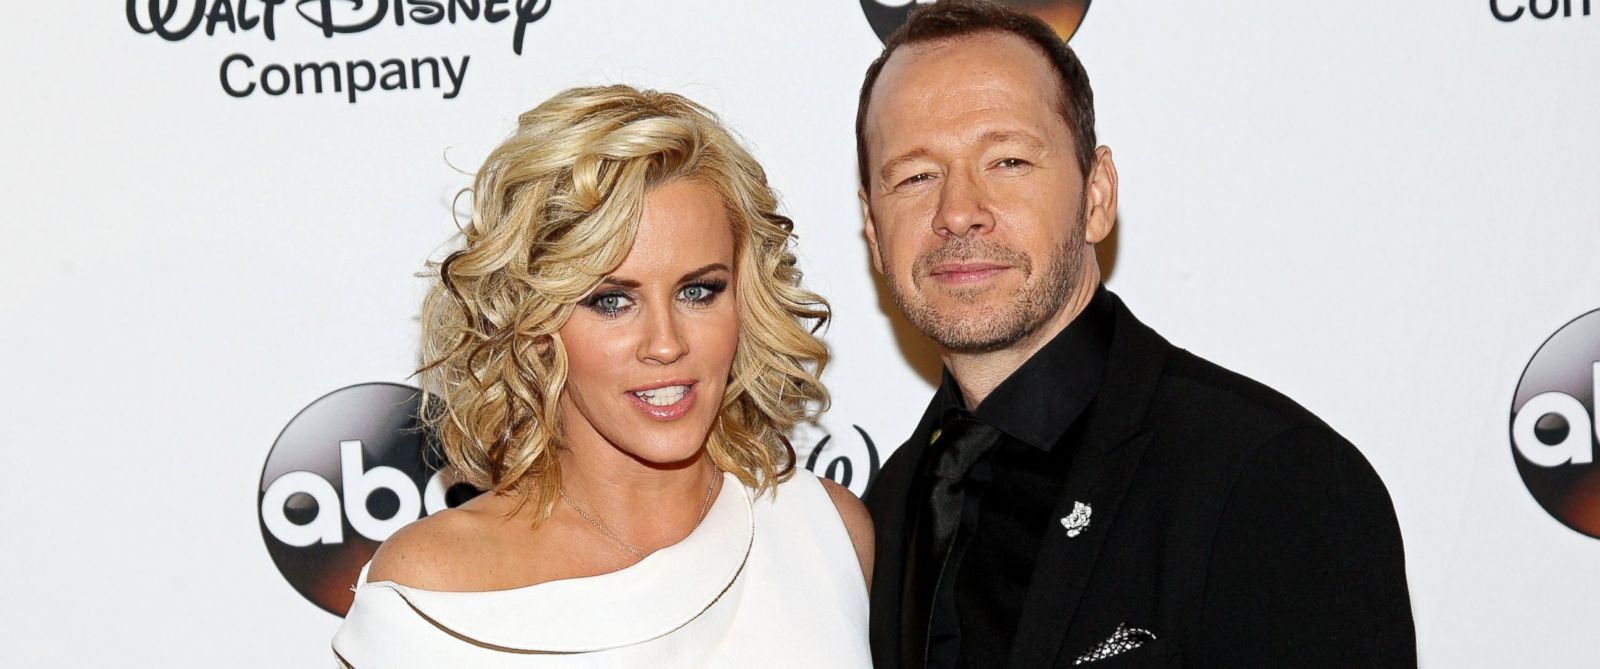 PHOTO: Jenny McCarthy and Donnie Wahlberg attend A Celebration of Barbara Walters Cocktail Reception at the Four Seasons Restaurant, May 14, 2014, in New York City.